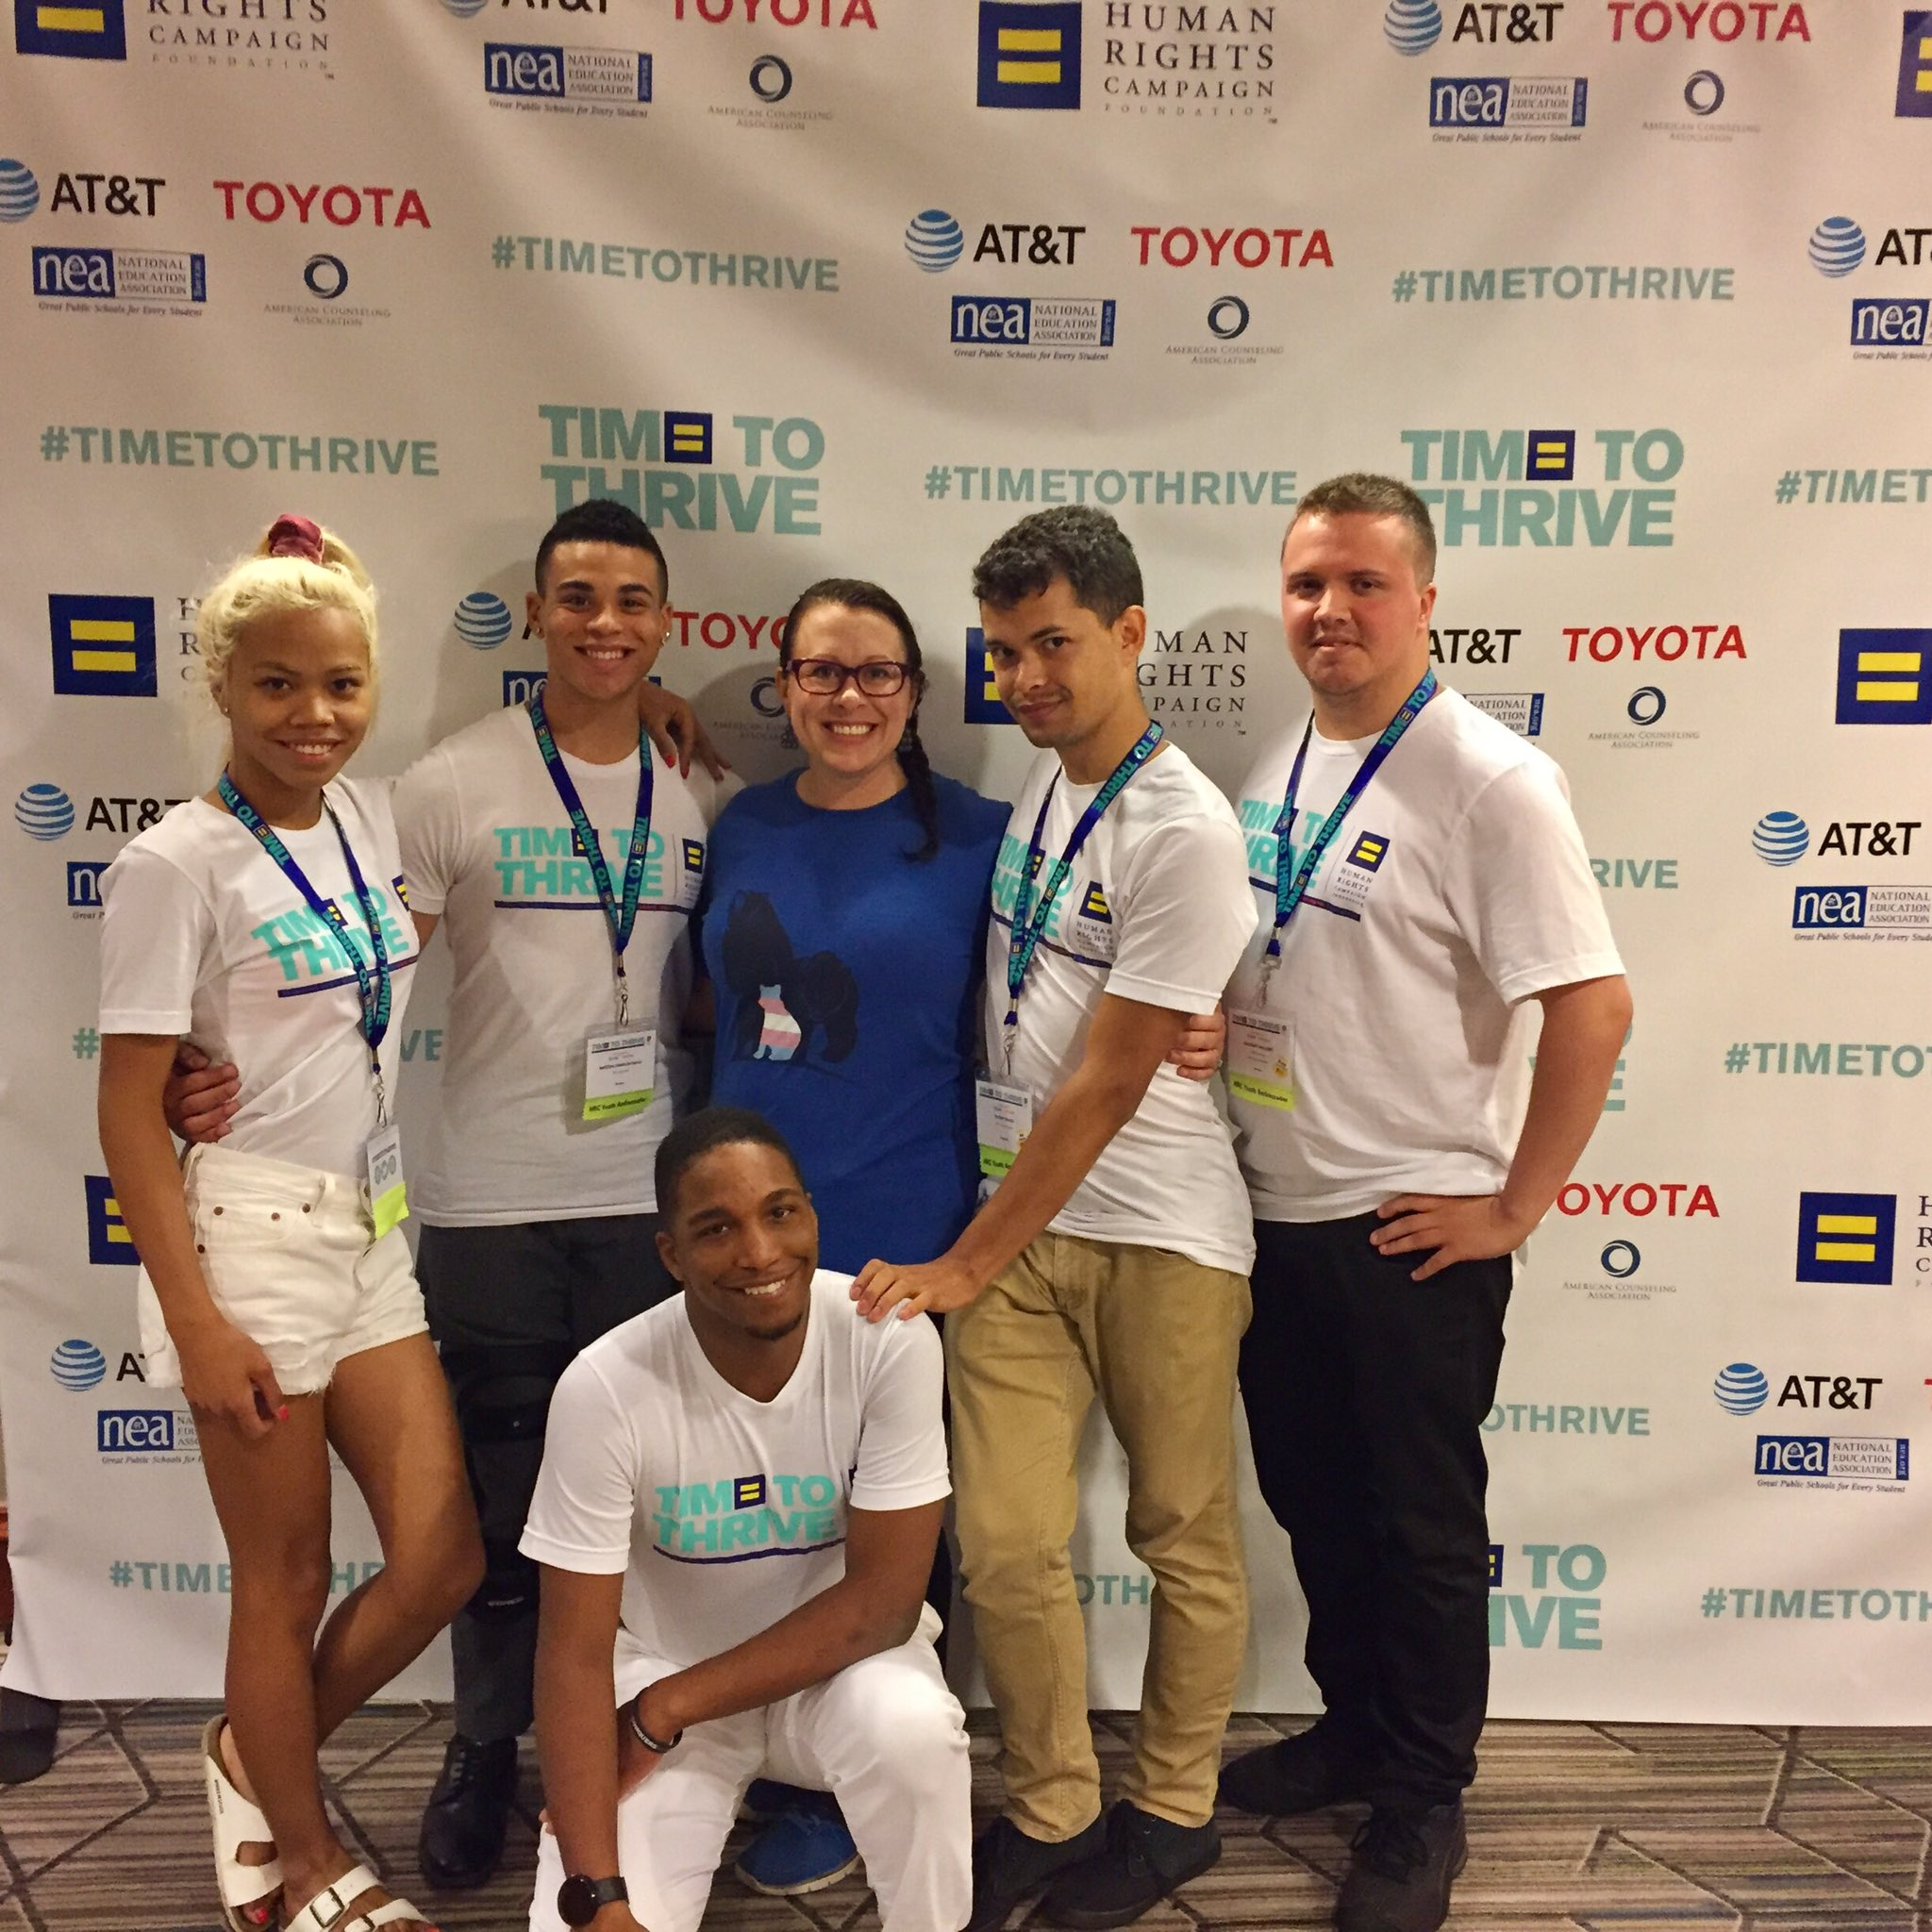 """Having the ultimate #MamaBear  moment with my new """"kids""""- the @HRC Youth Ambassadors! Love these amazing young leaders!! #TimeToThrive https://t.co/n11hbtg9ki"""